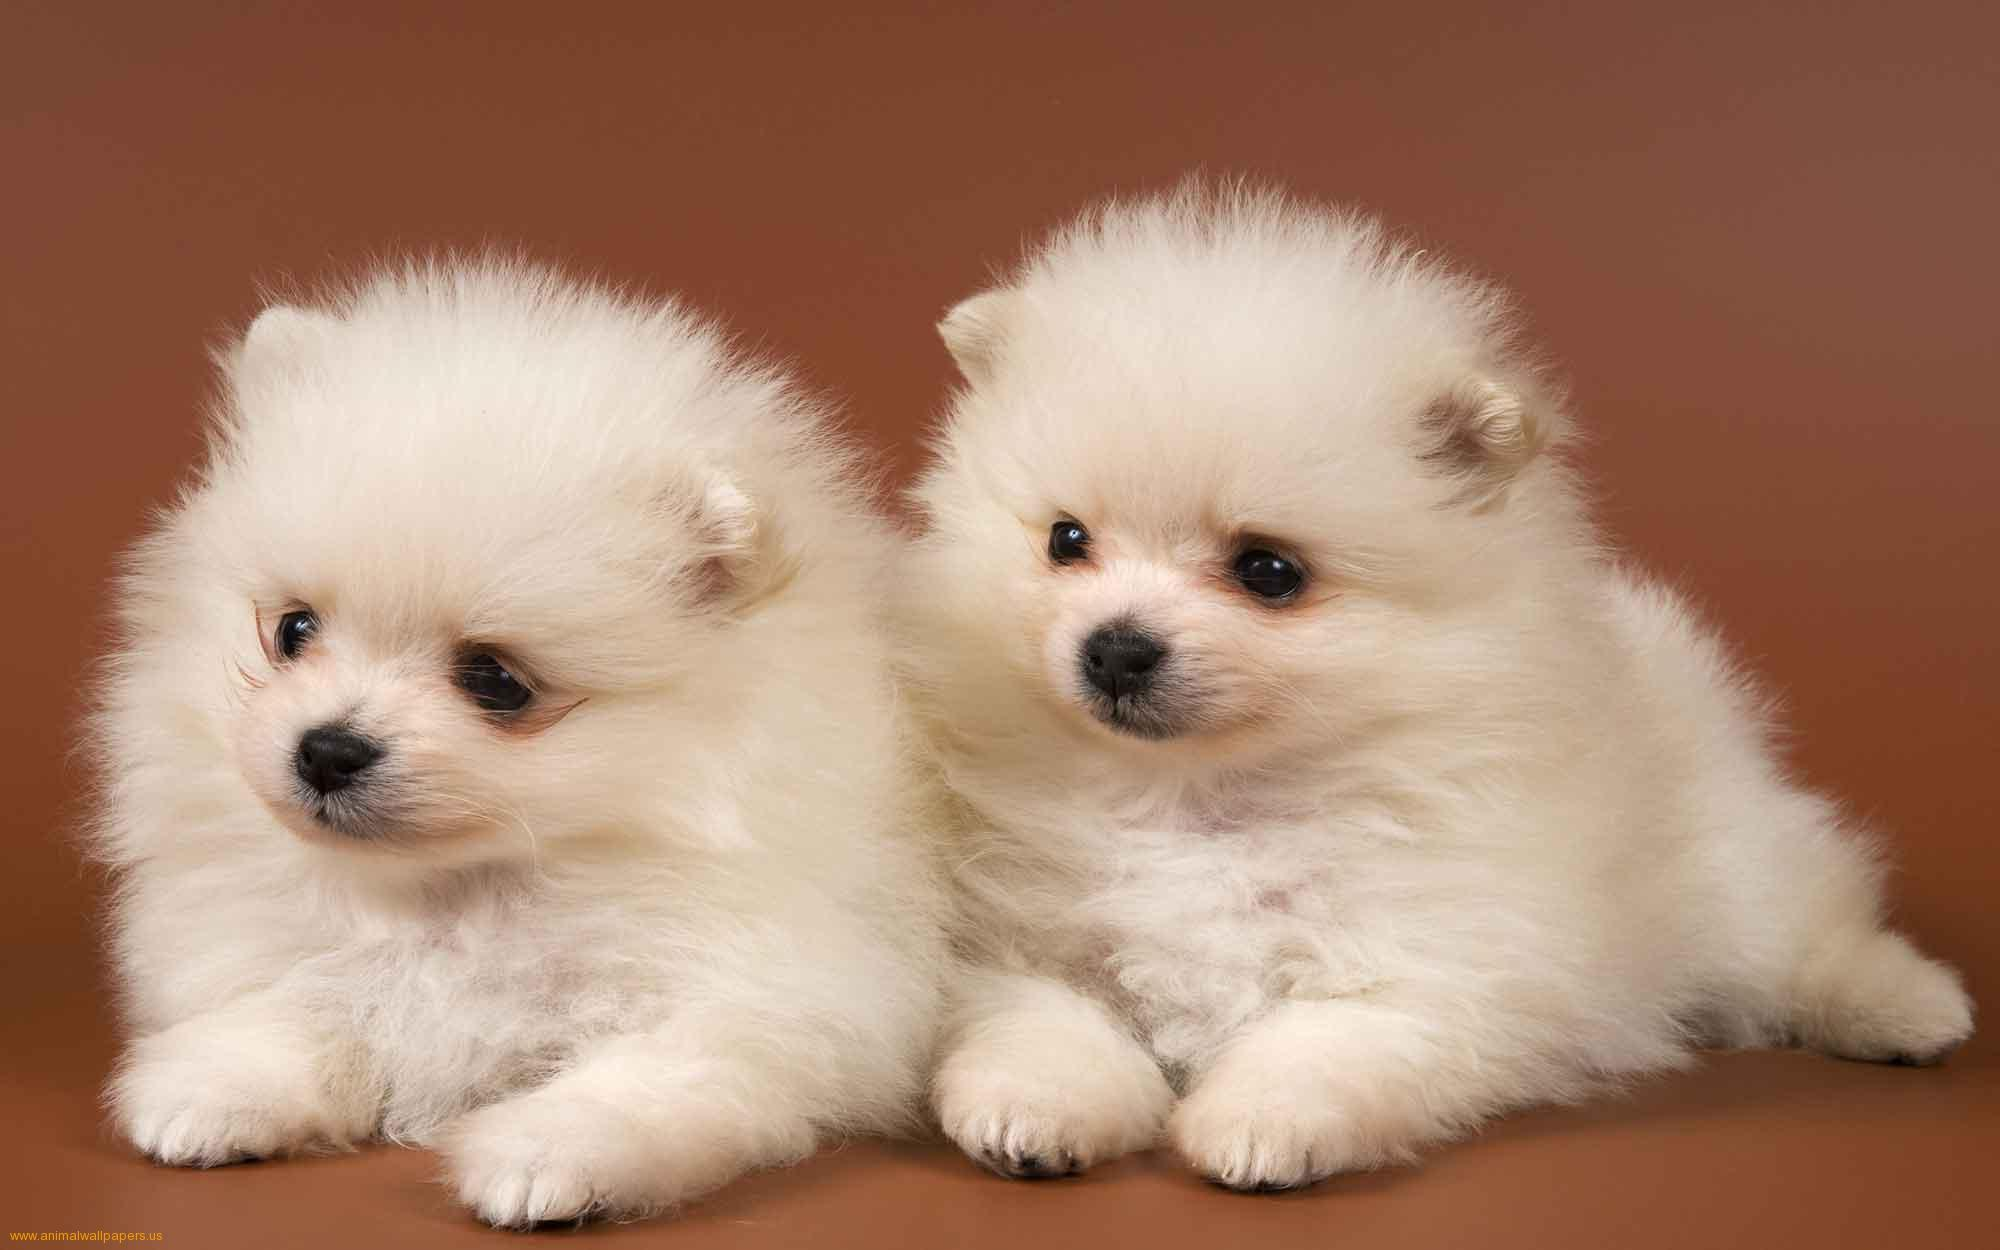 Cute Puppy Pictures Wallpapers Wallpaper Cave HD Wallpapers Download Free Images Wallpaper [1000image.com]